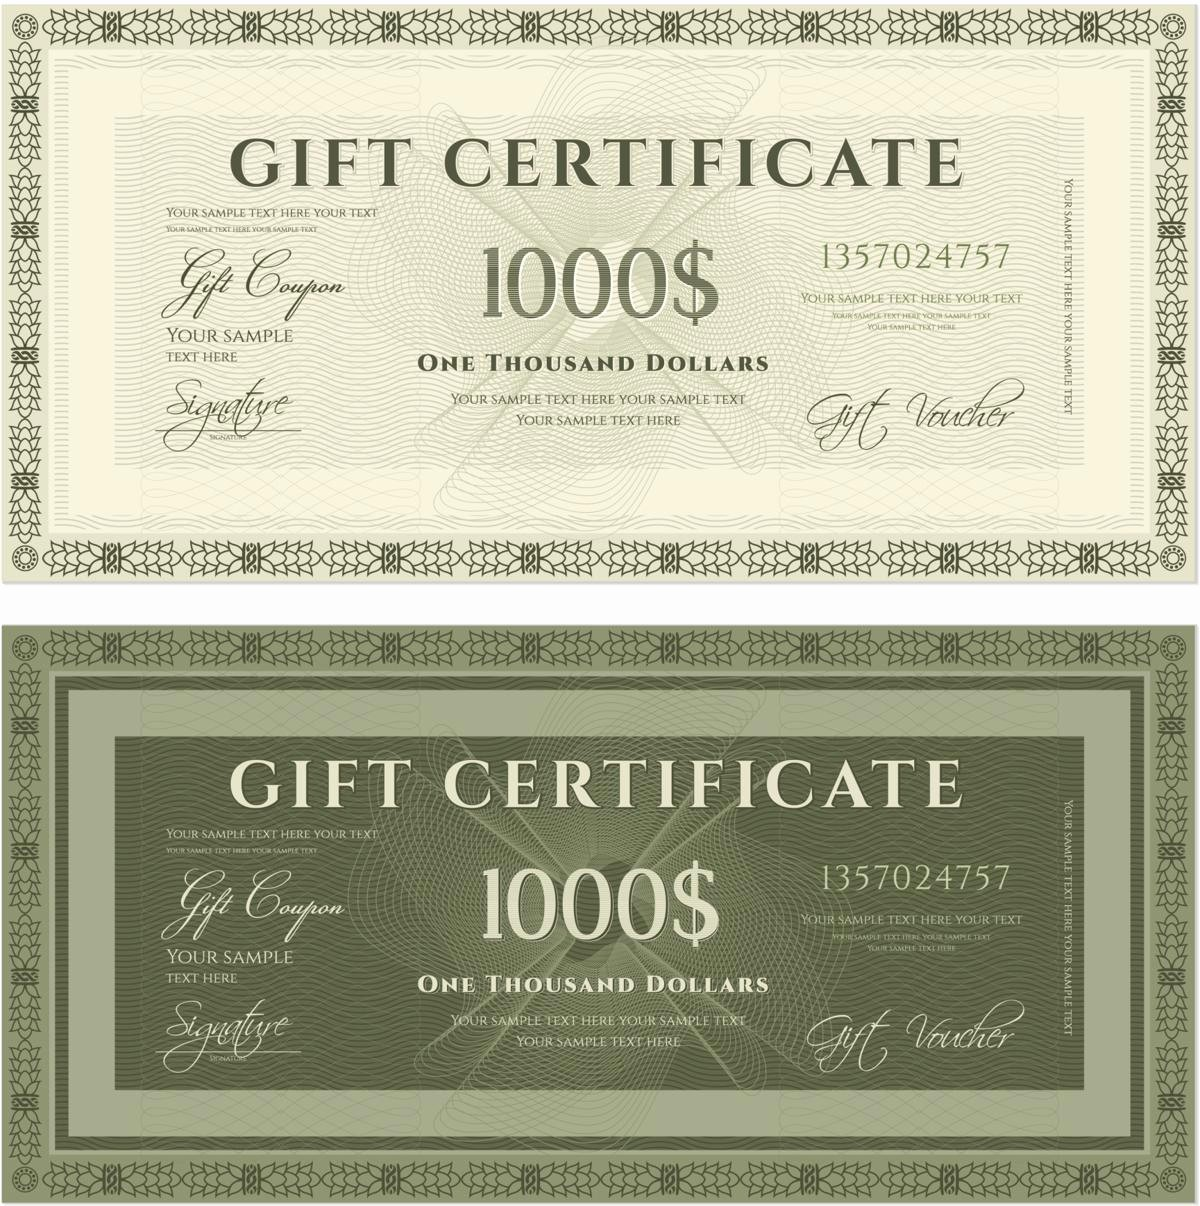 How to Make Gift Certificates Lovely Sample Wordings for Gift Certificates You Ll Want to Copy now